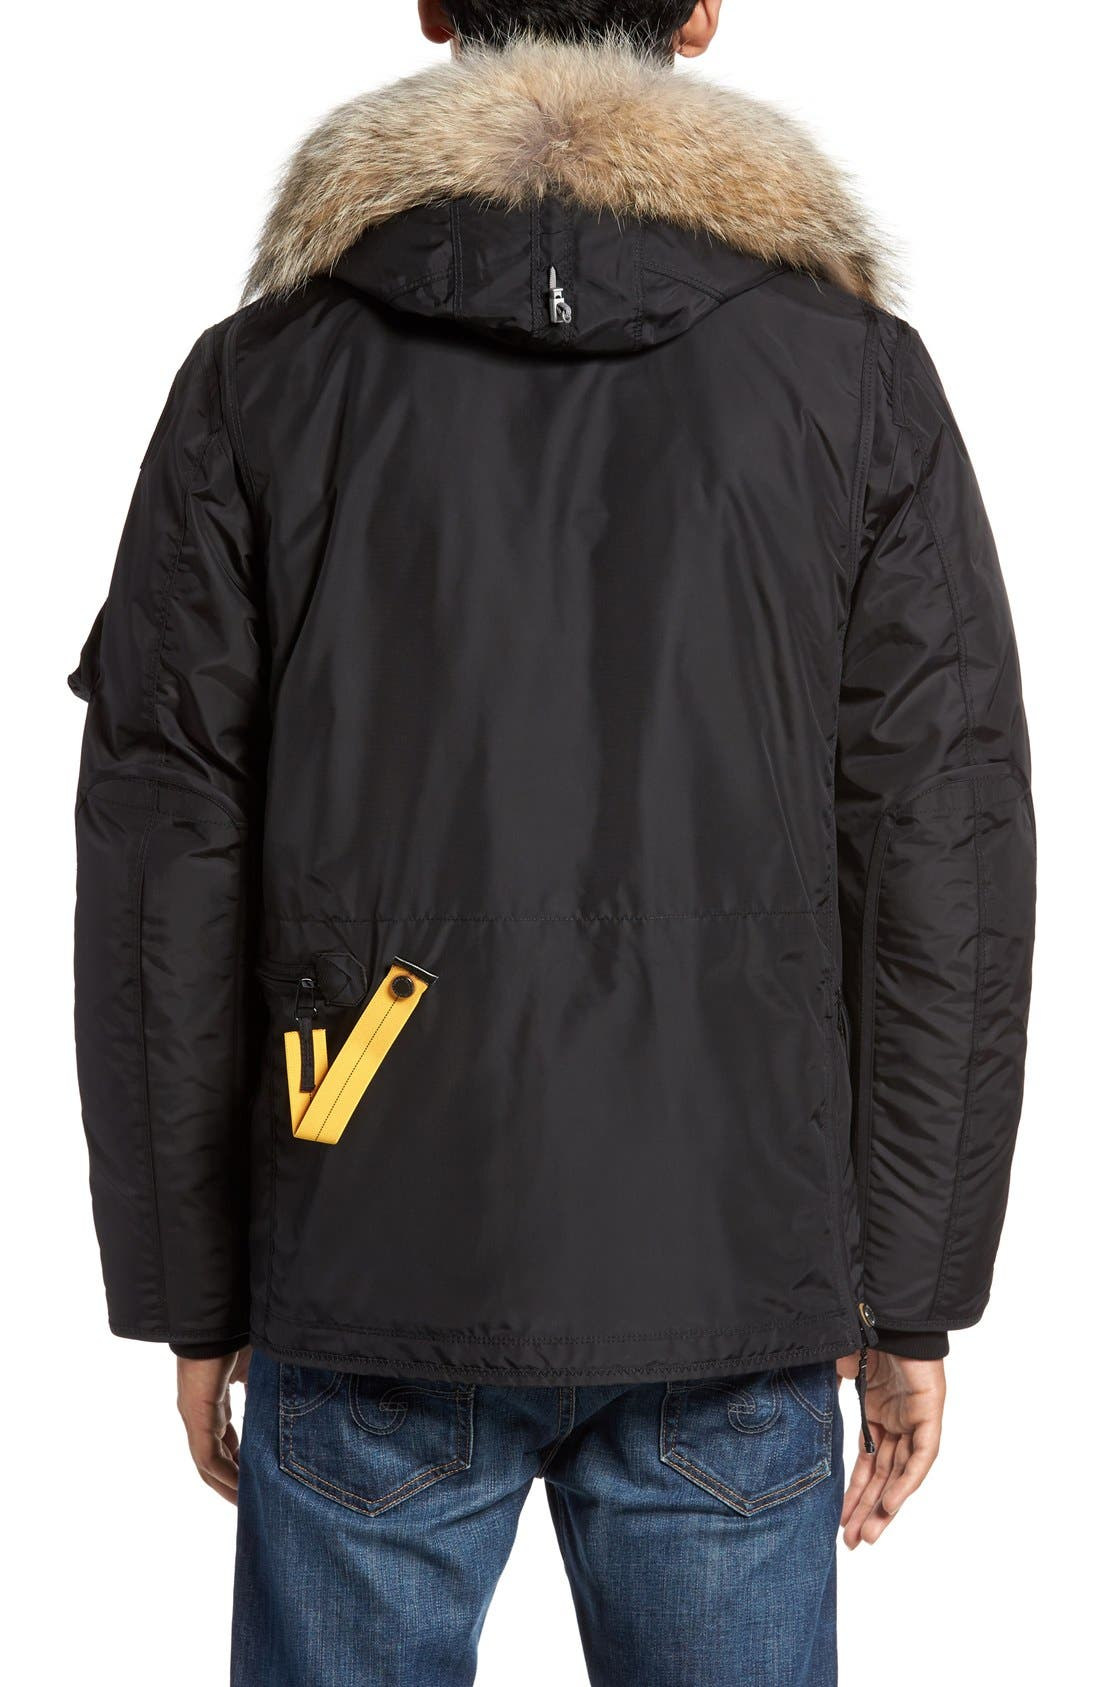 'Right Hand' Water Repellent Down Jacket with Faux Fur & Genuine Coyote Fur Trim,                             Alternate thumbnail 2, color,                             001